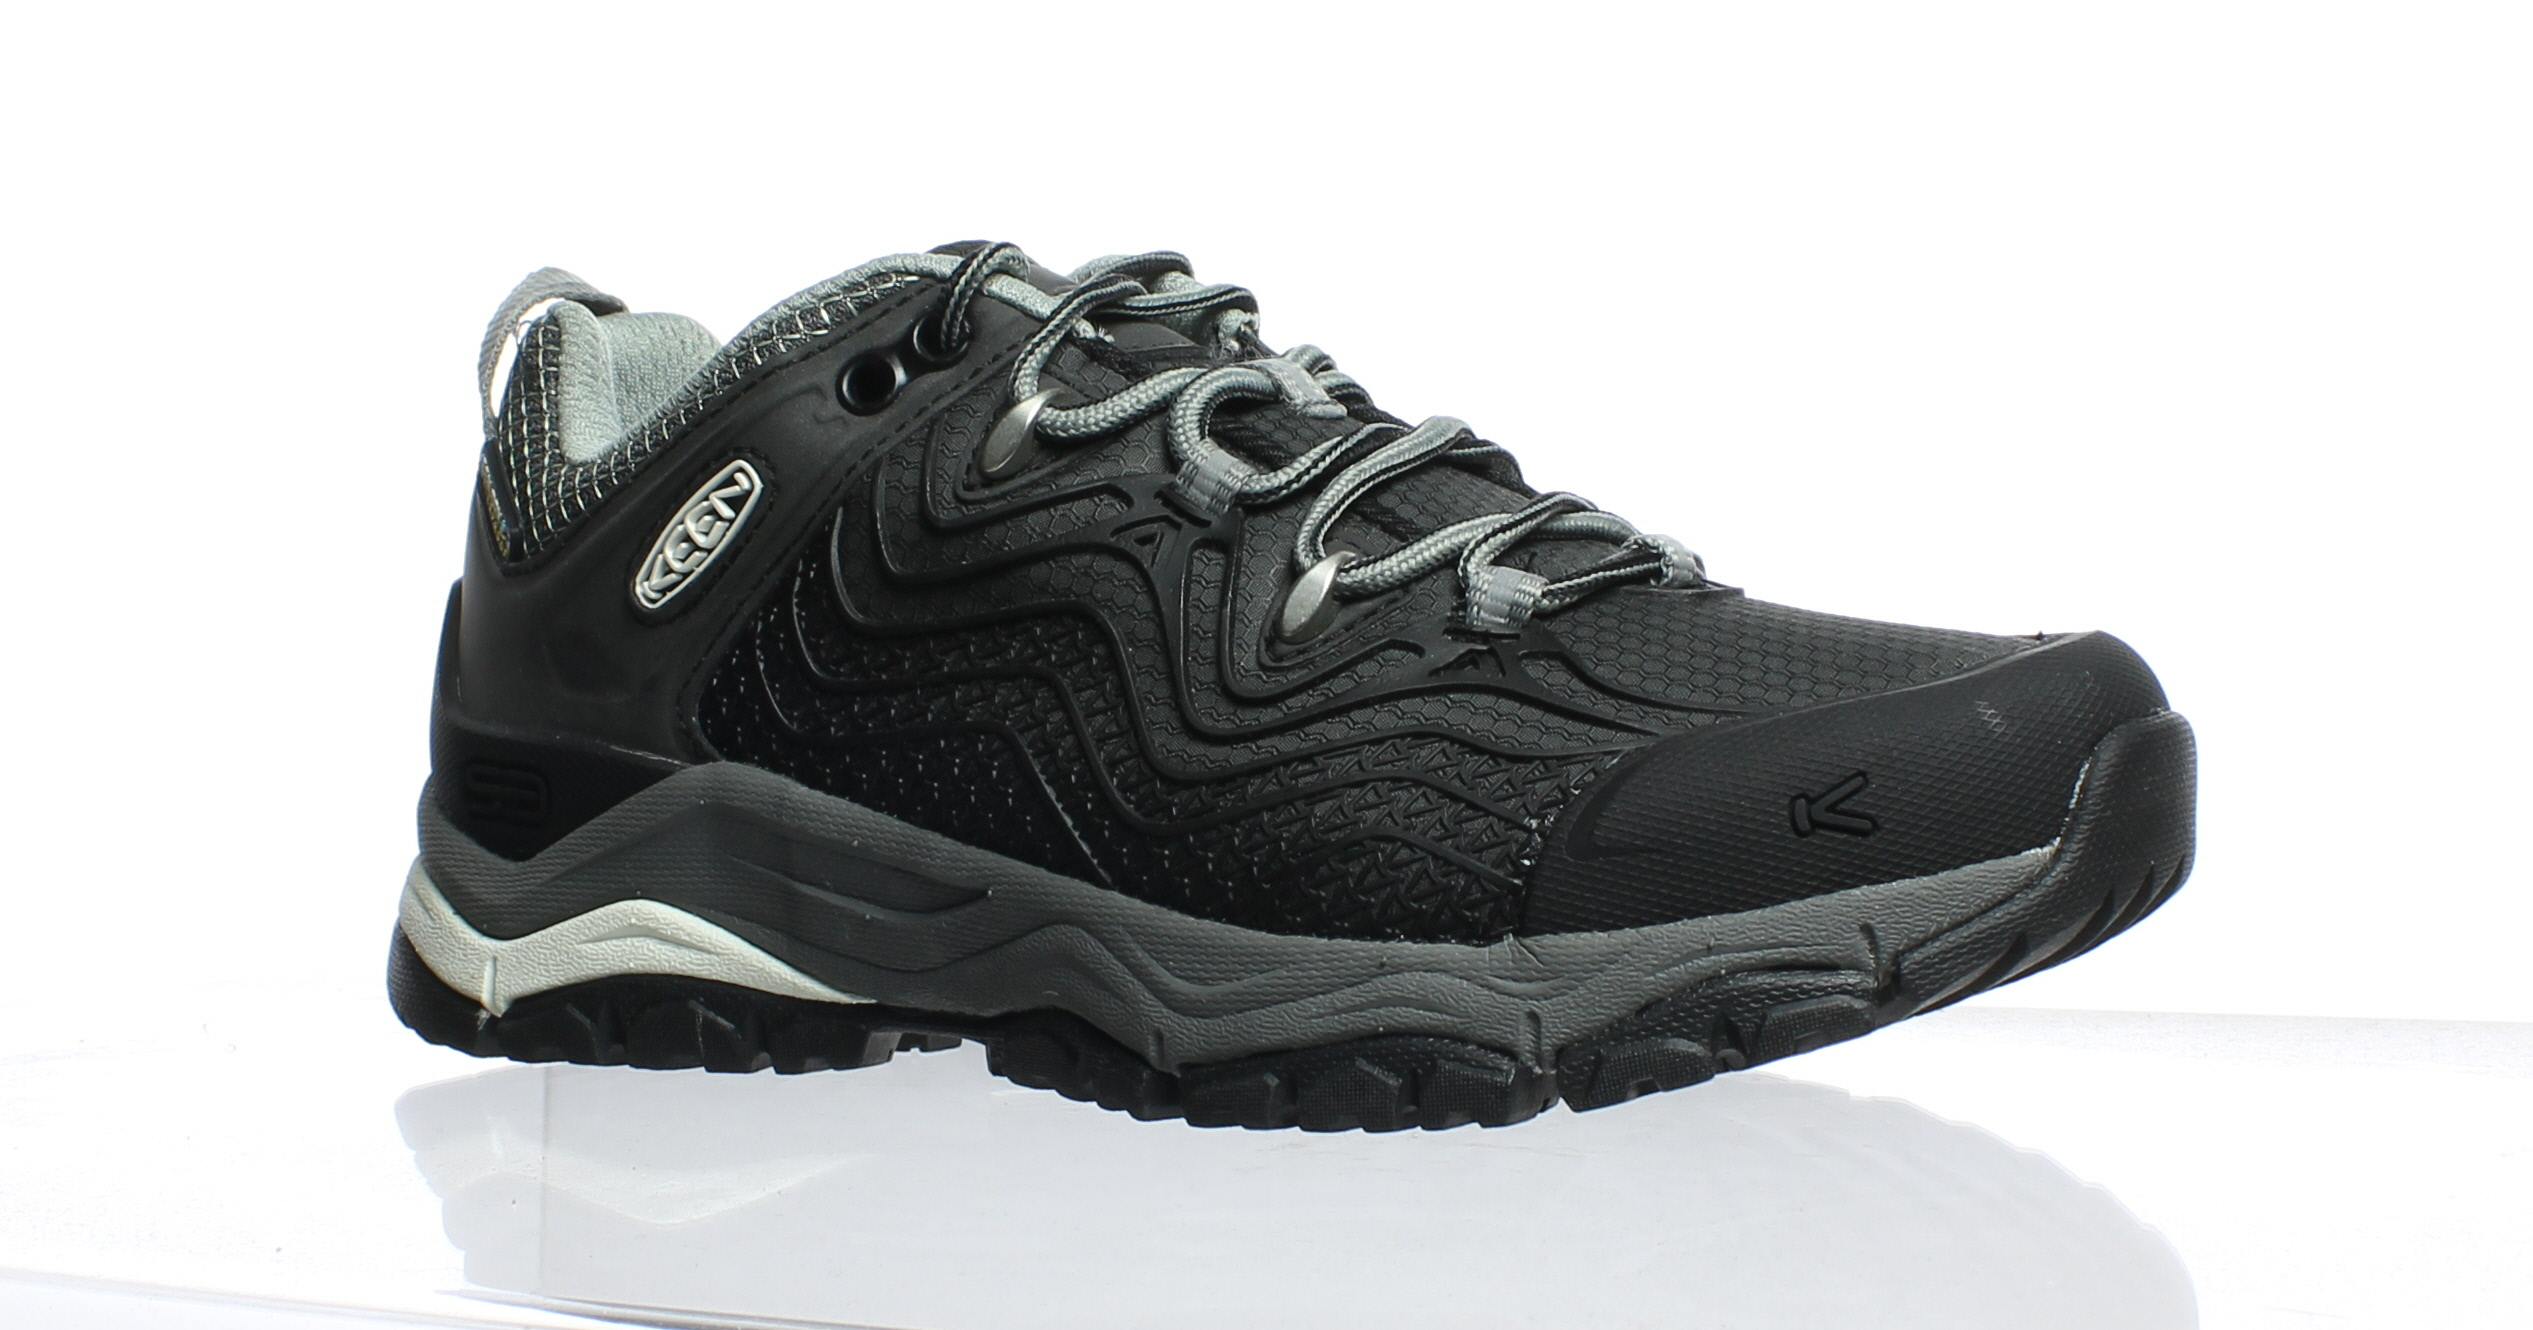 6cf020fdaf90 New KEEN Womens Aphlex Wp Black Gargoyle Hiking Shoes Size 5 ...